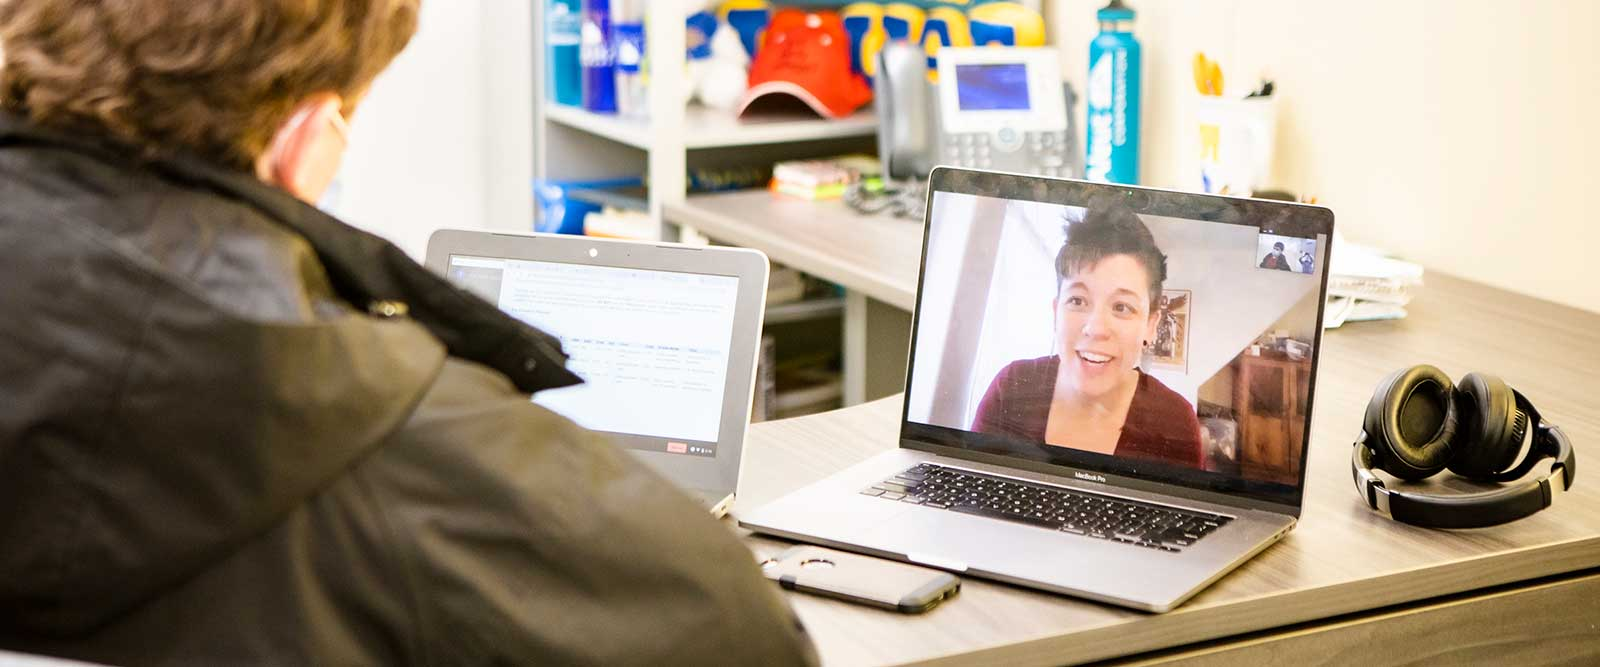 A student on a laptop video conferences with an advisor during a virtual advising session.